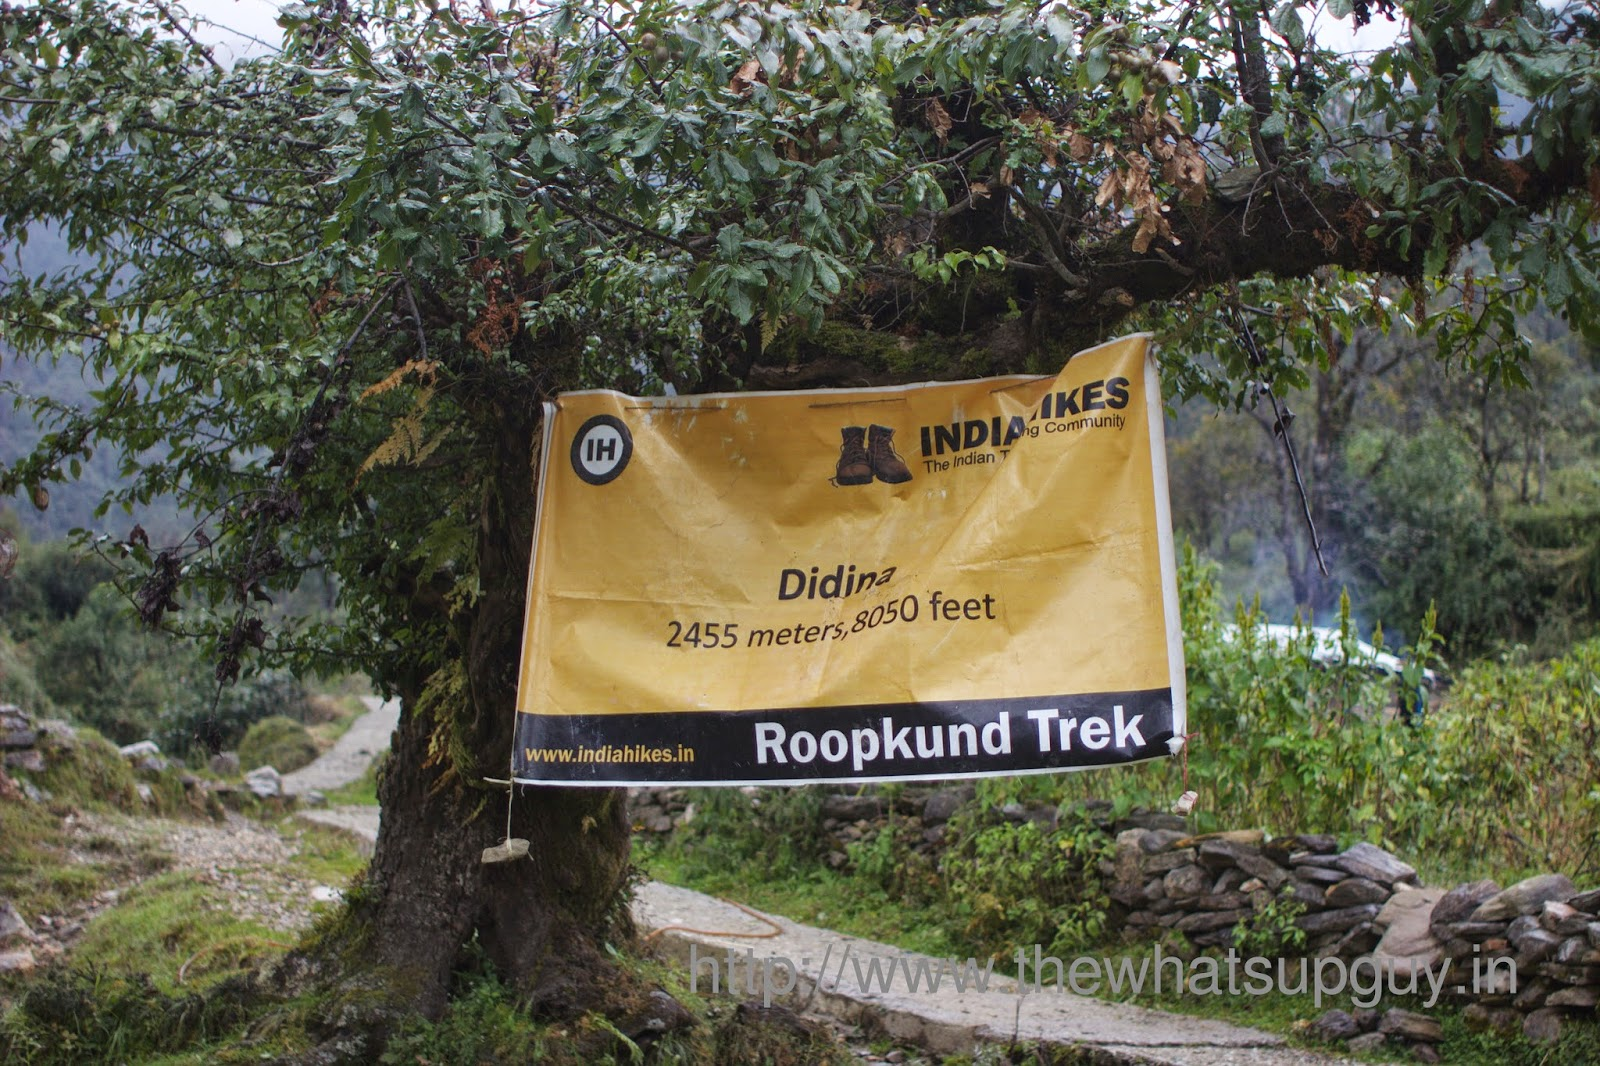 Didina-Roopkund-Trek-With-India-Hikes-Day-1